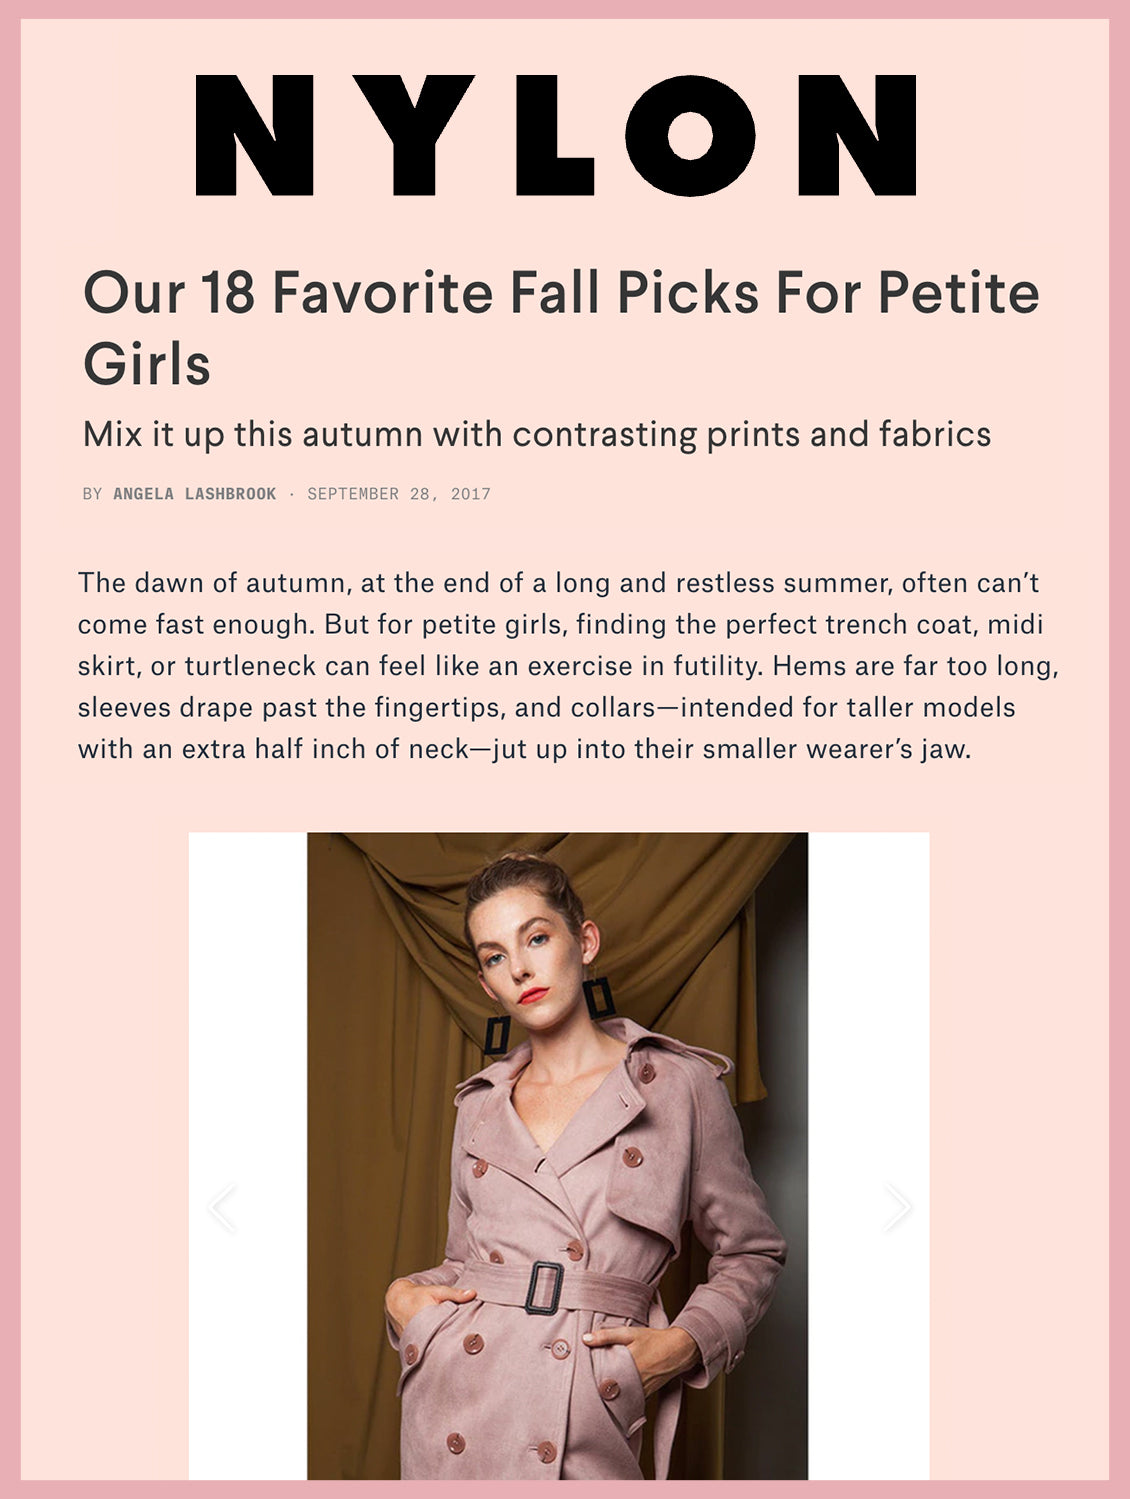 Our 18 Favorite Fall Picks For Petite Girls